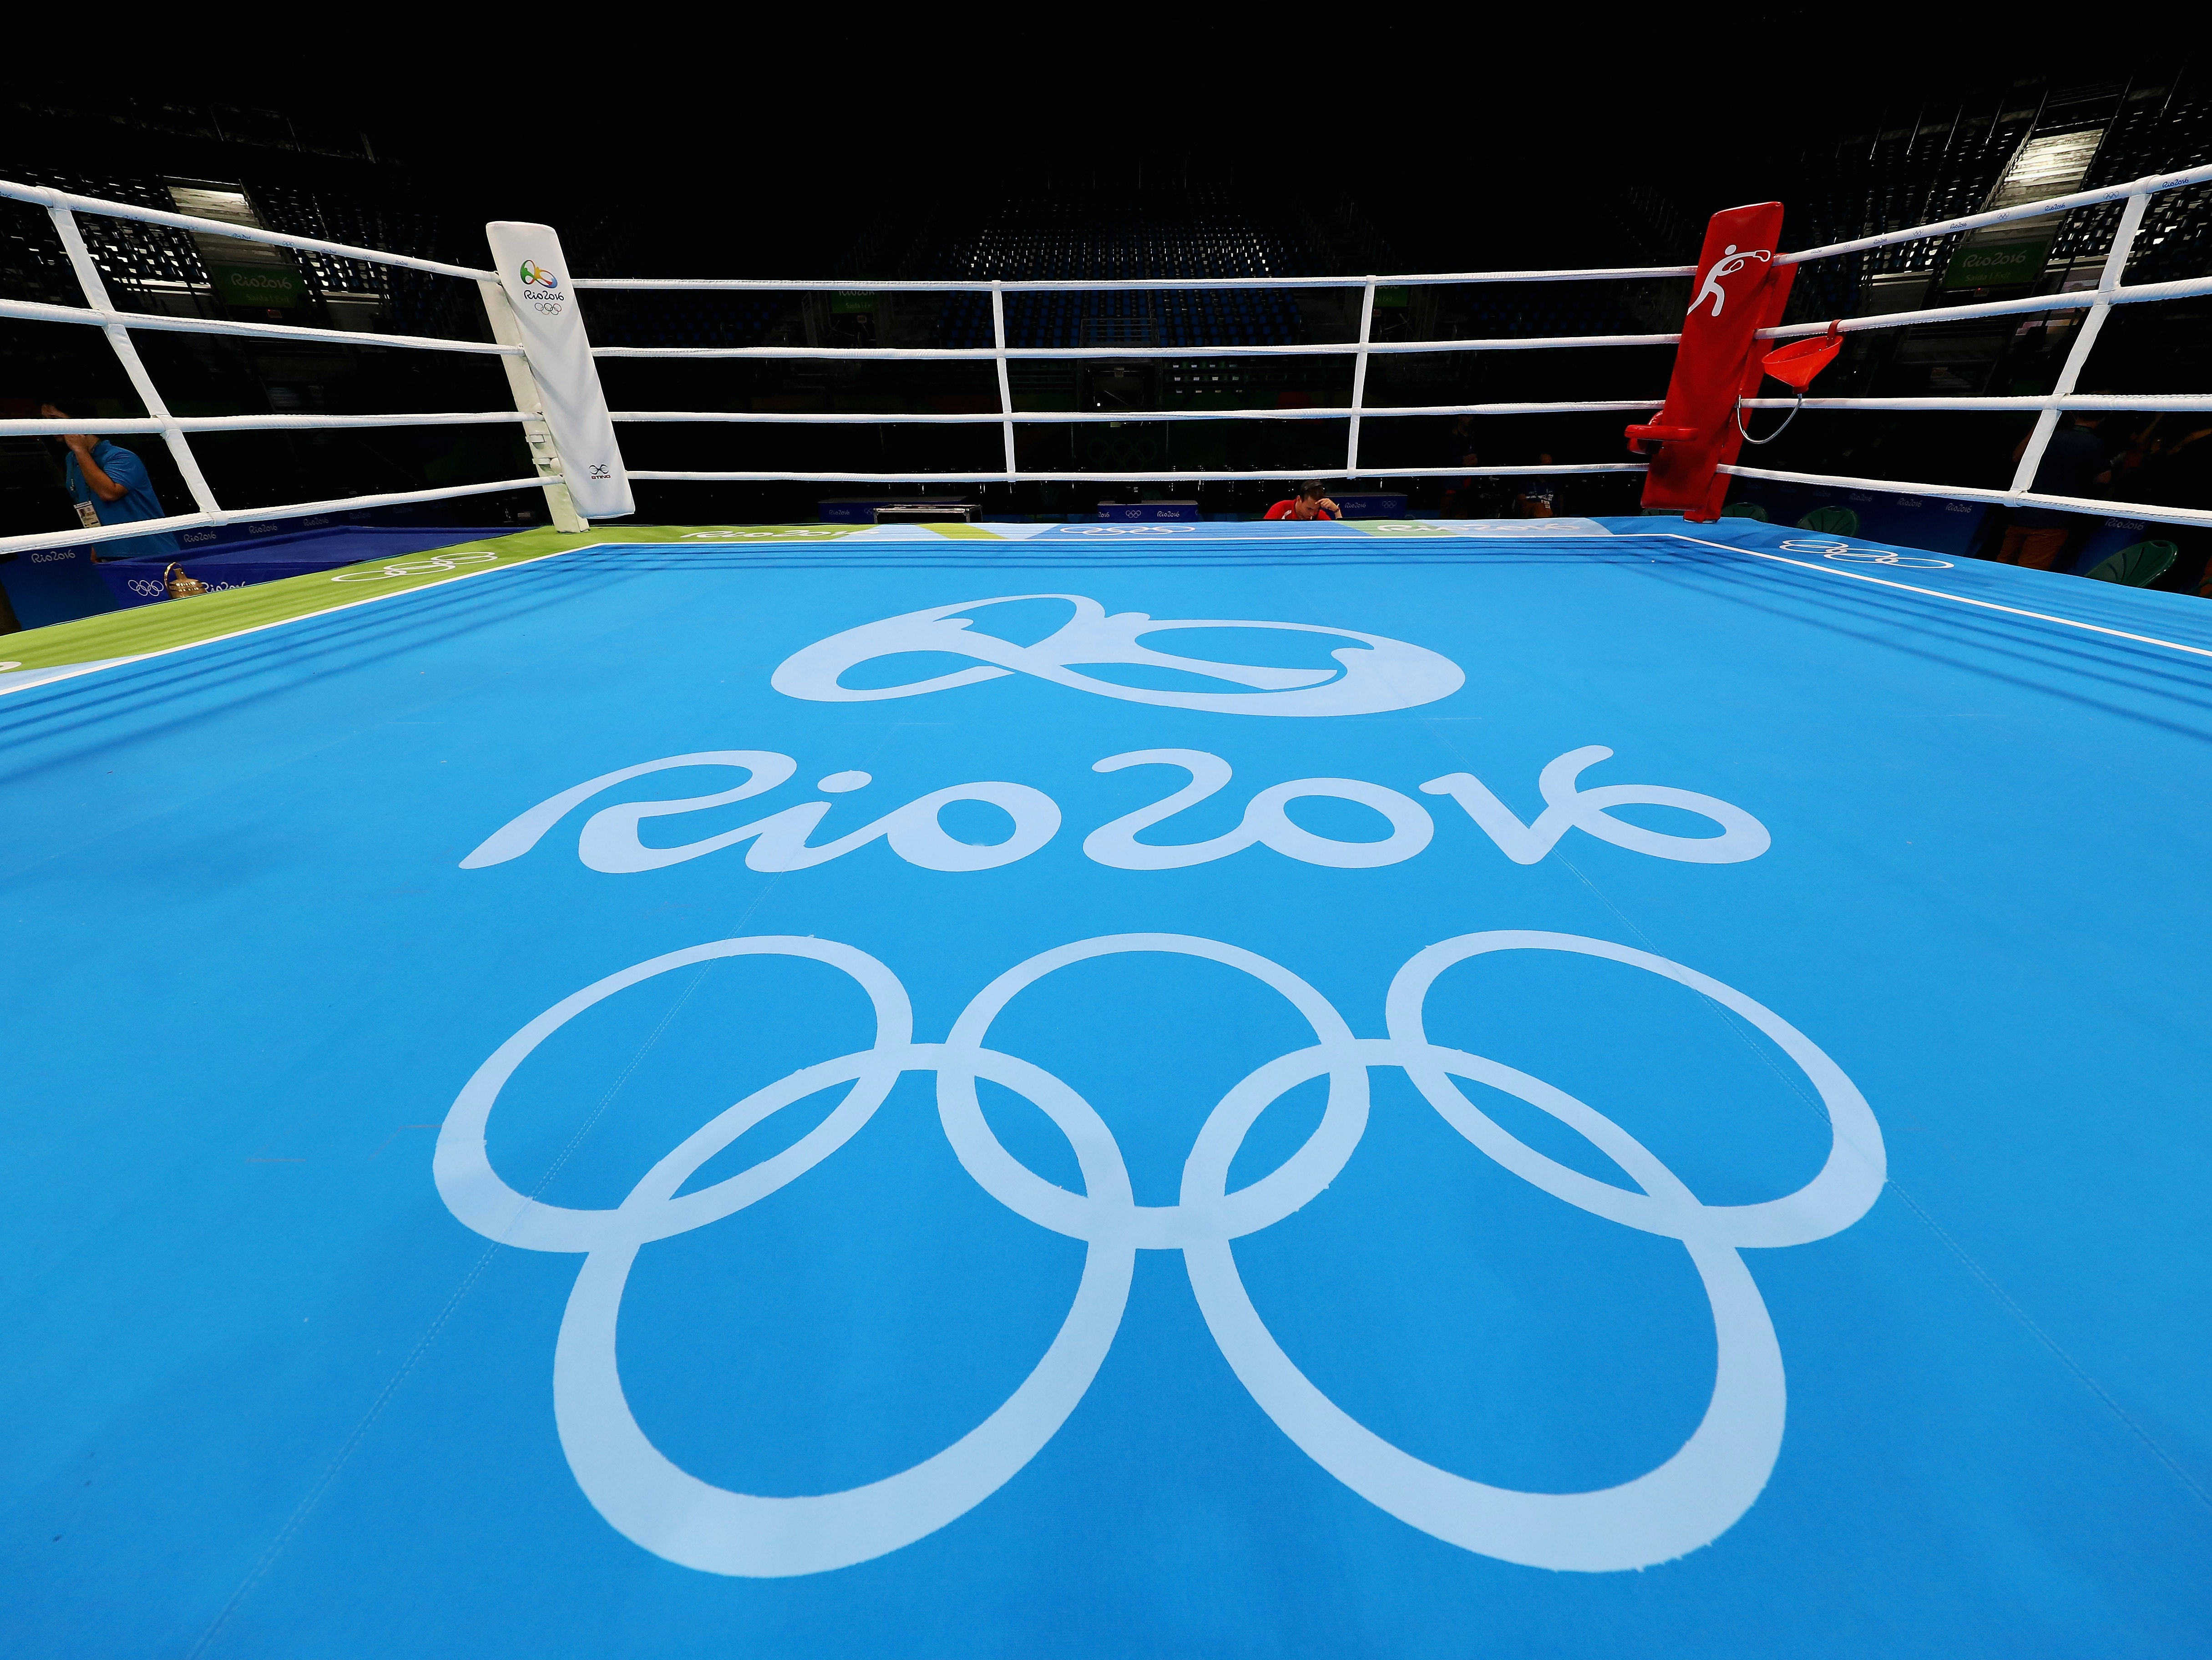 RIO DE JANEIRO, BRAZIL - AUGUST 06:  A general view of the empty boxing ring with official logo on the mat prior to Day 1 of the Rio 2016 Olympic Games at Riocentro - Pavilion 6 on August 6, 2016 in Rio de Janeiro, Brazil.  (Photo by Dean Mouhtaropoulos/Getty Images)